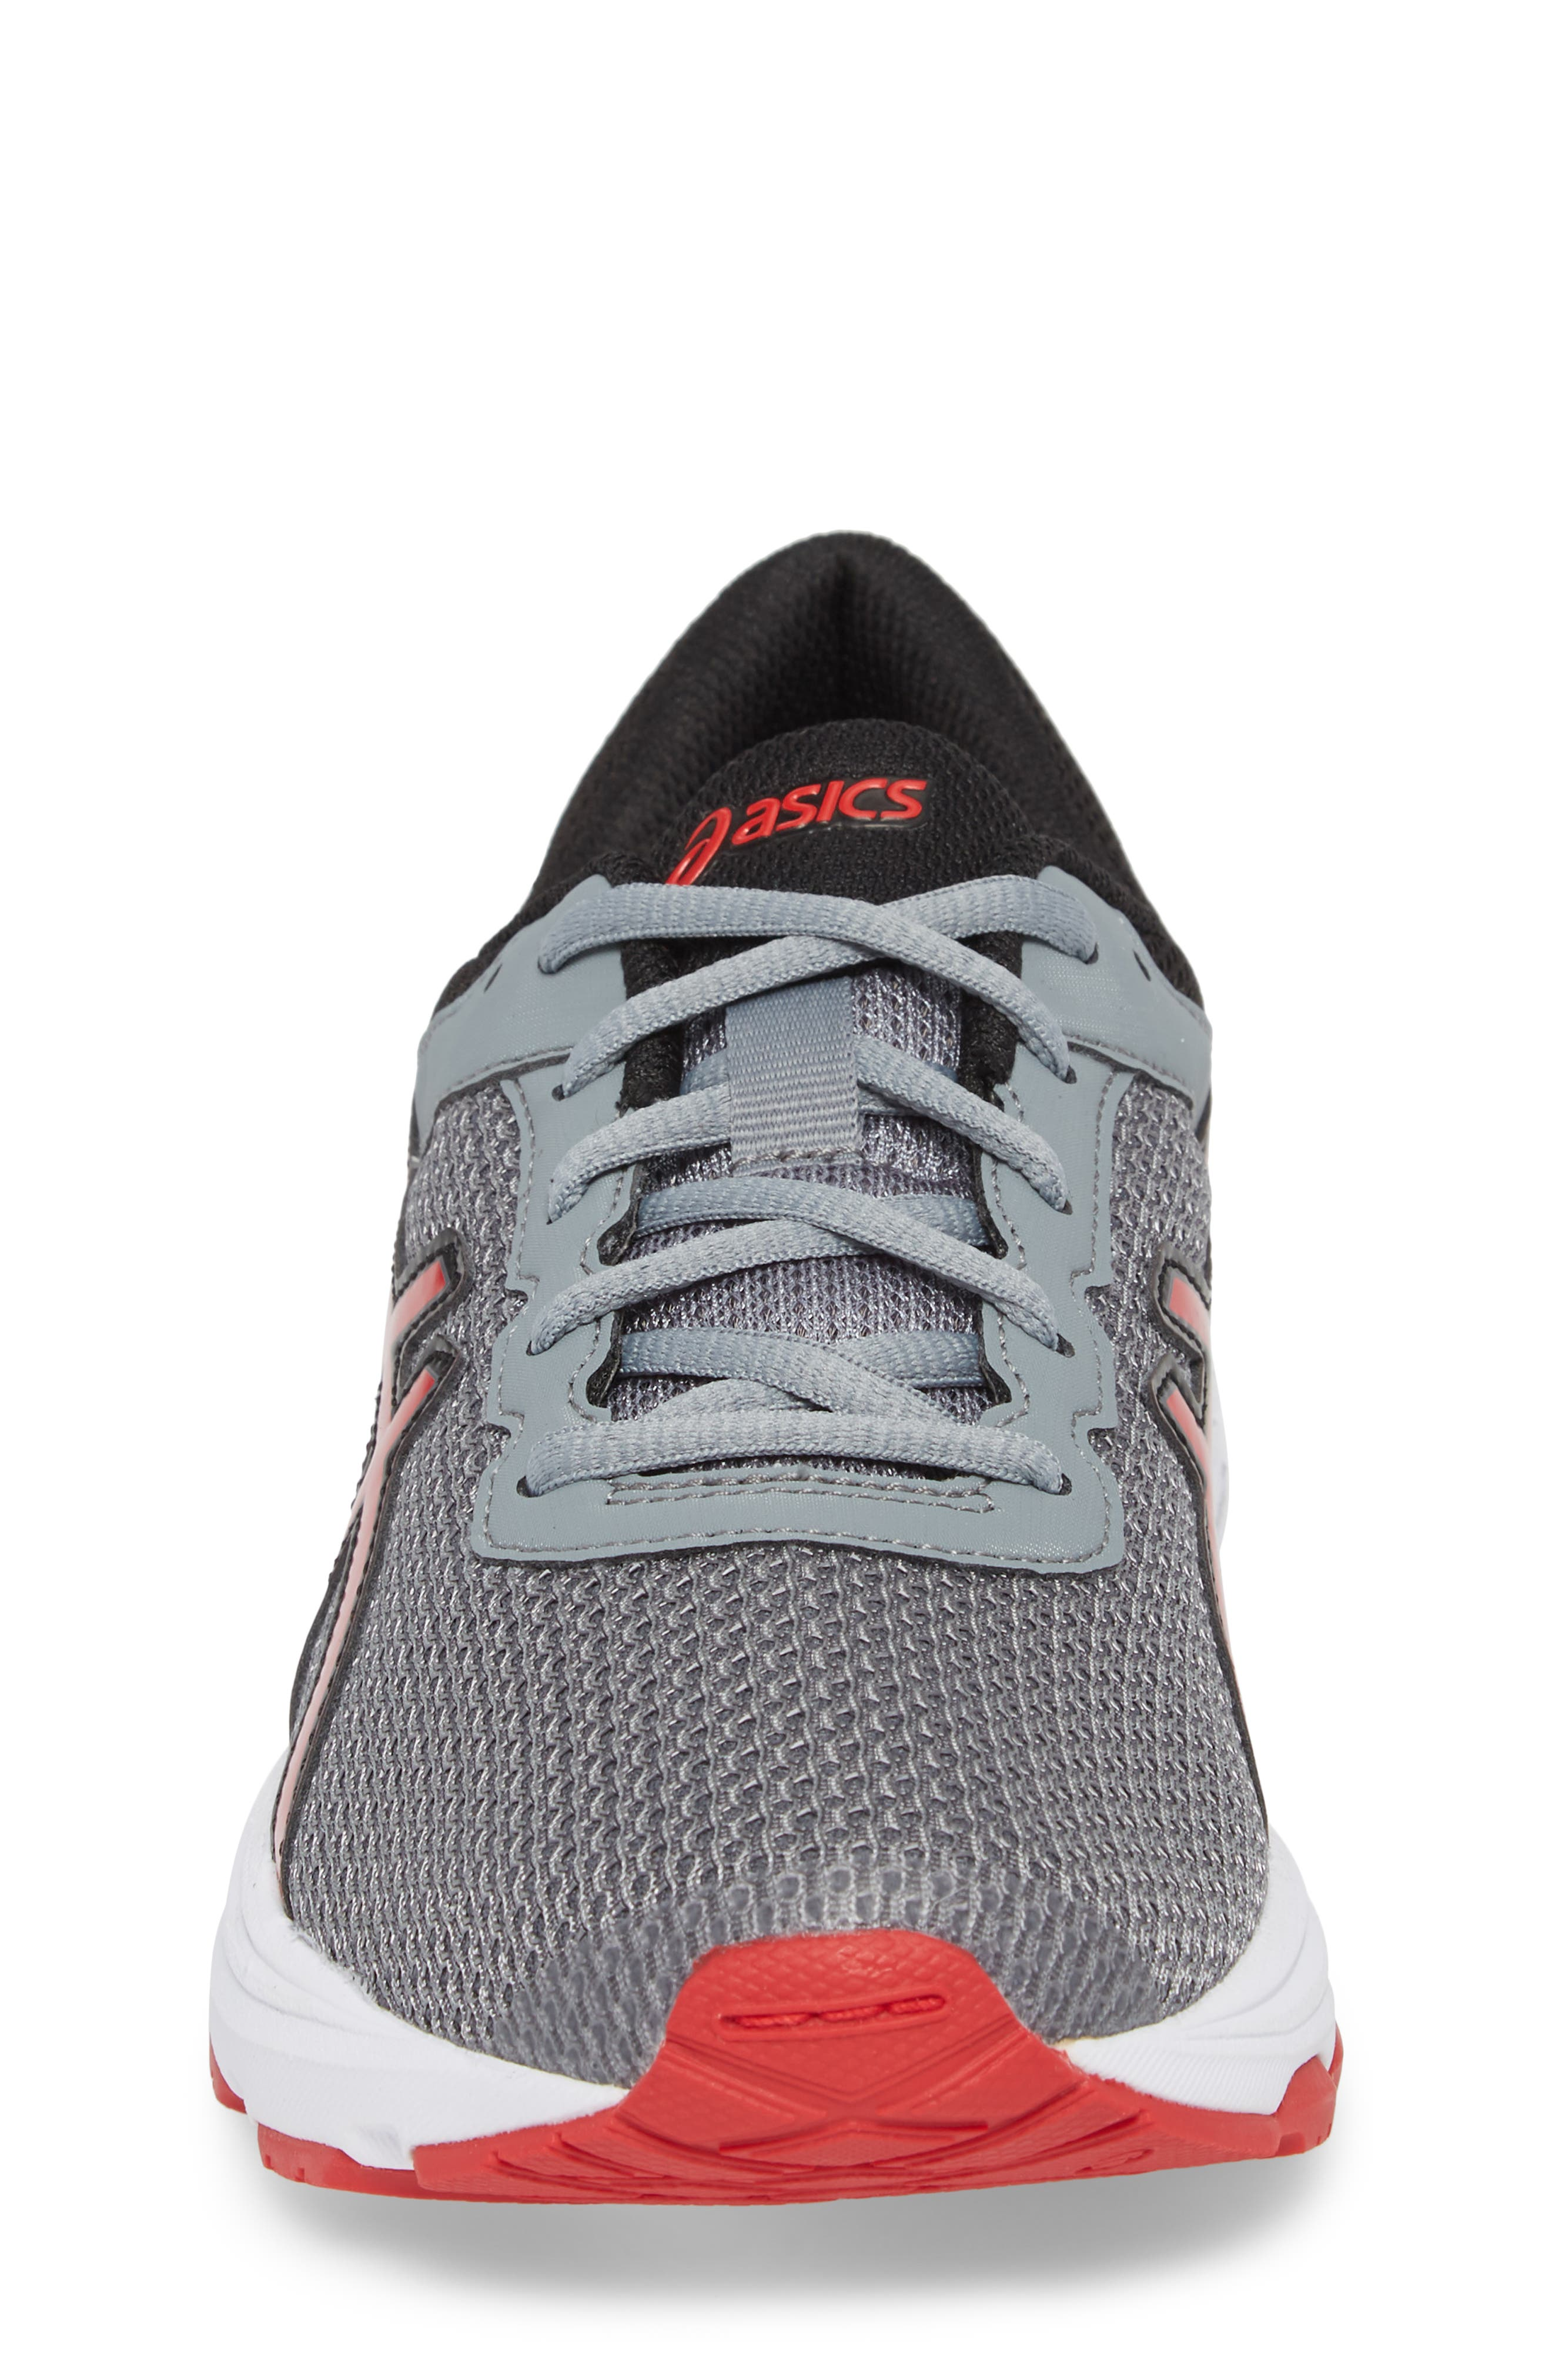 Asics GT-1000<sup>™</sup> 6 GS Sneaker,                             Alternate thumbnail 4, color,                             Stone Grey/ Classic Red/ Black